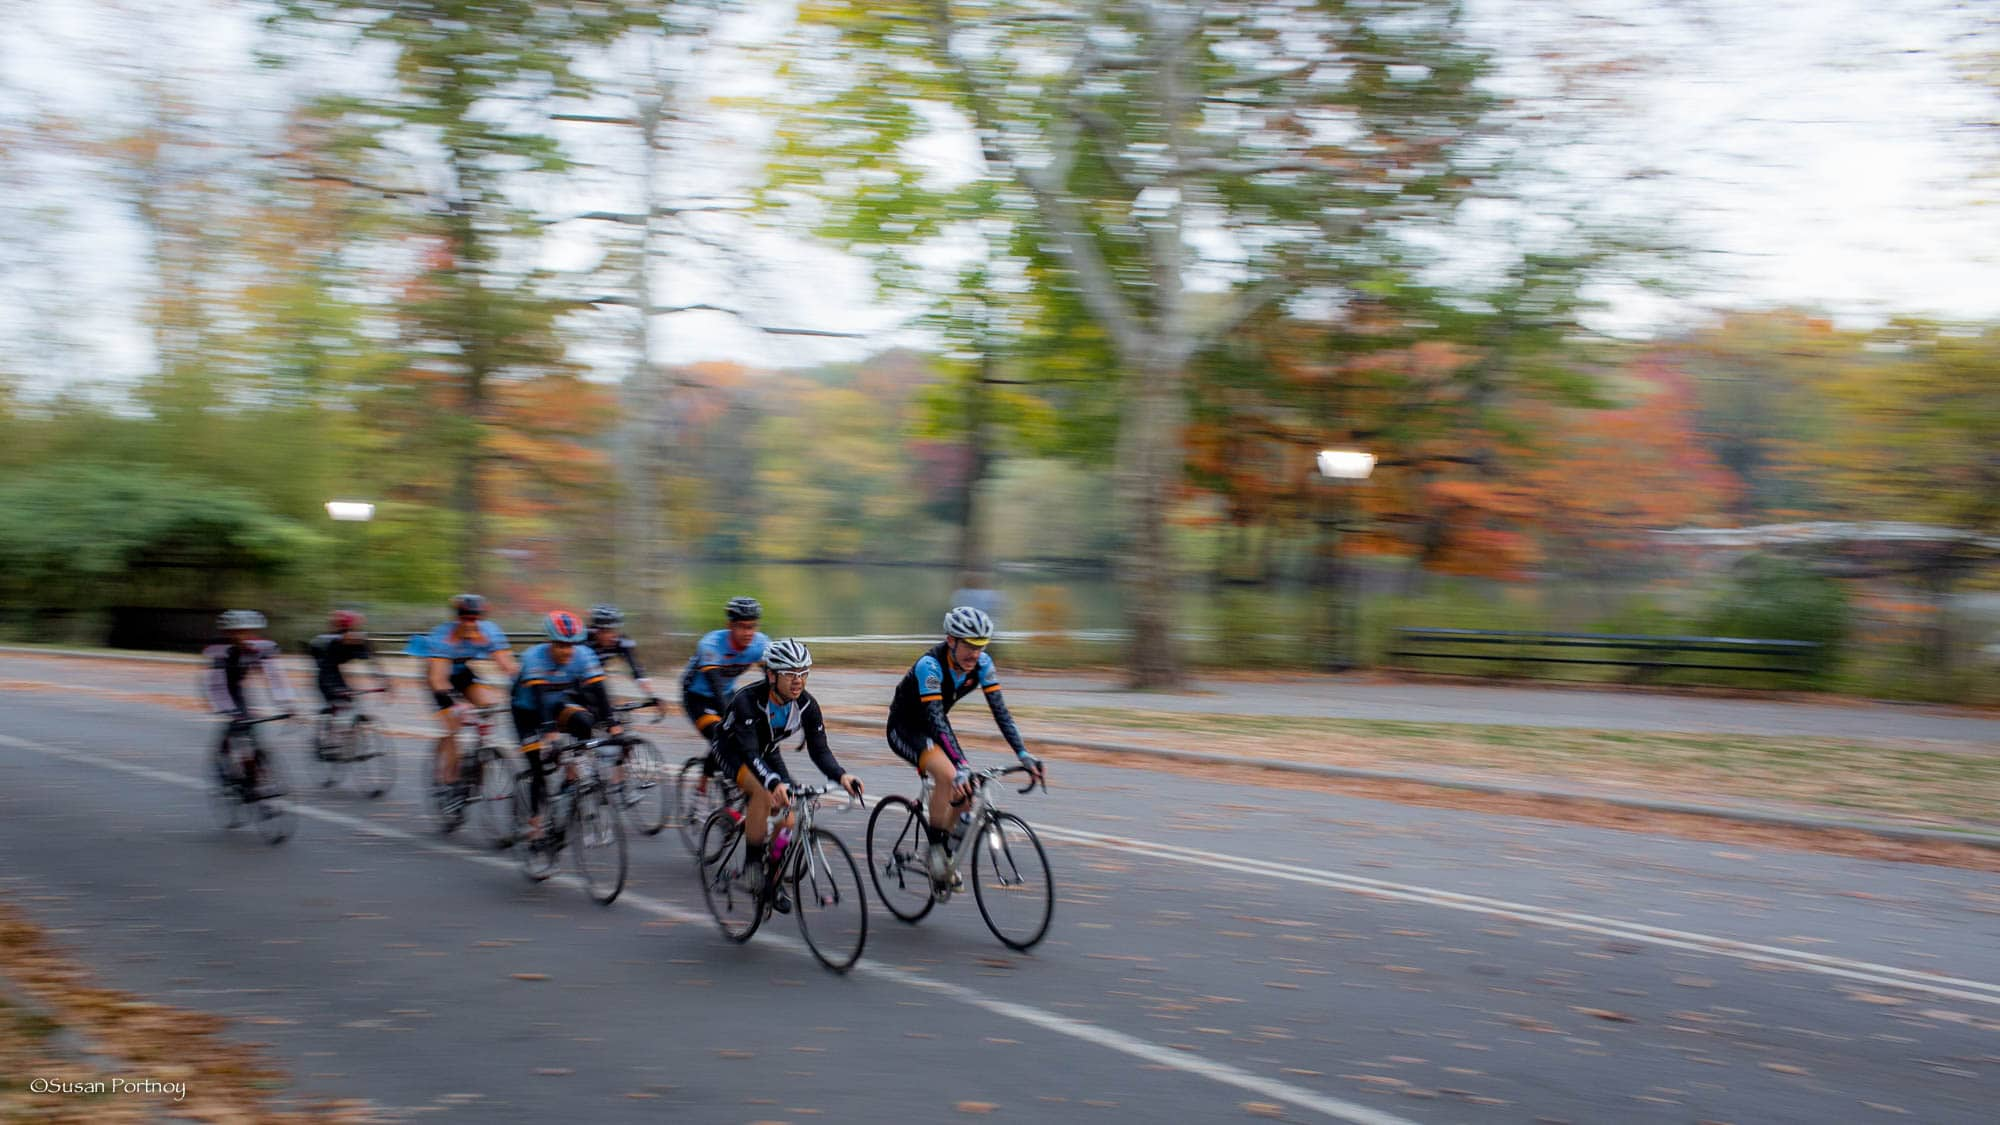 Cyclist packs biking in Central Park at sunrise